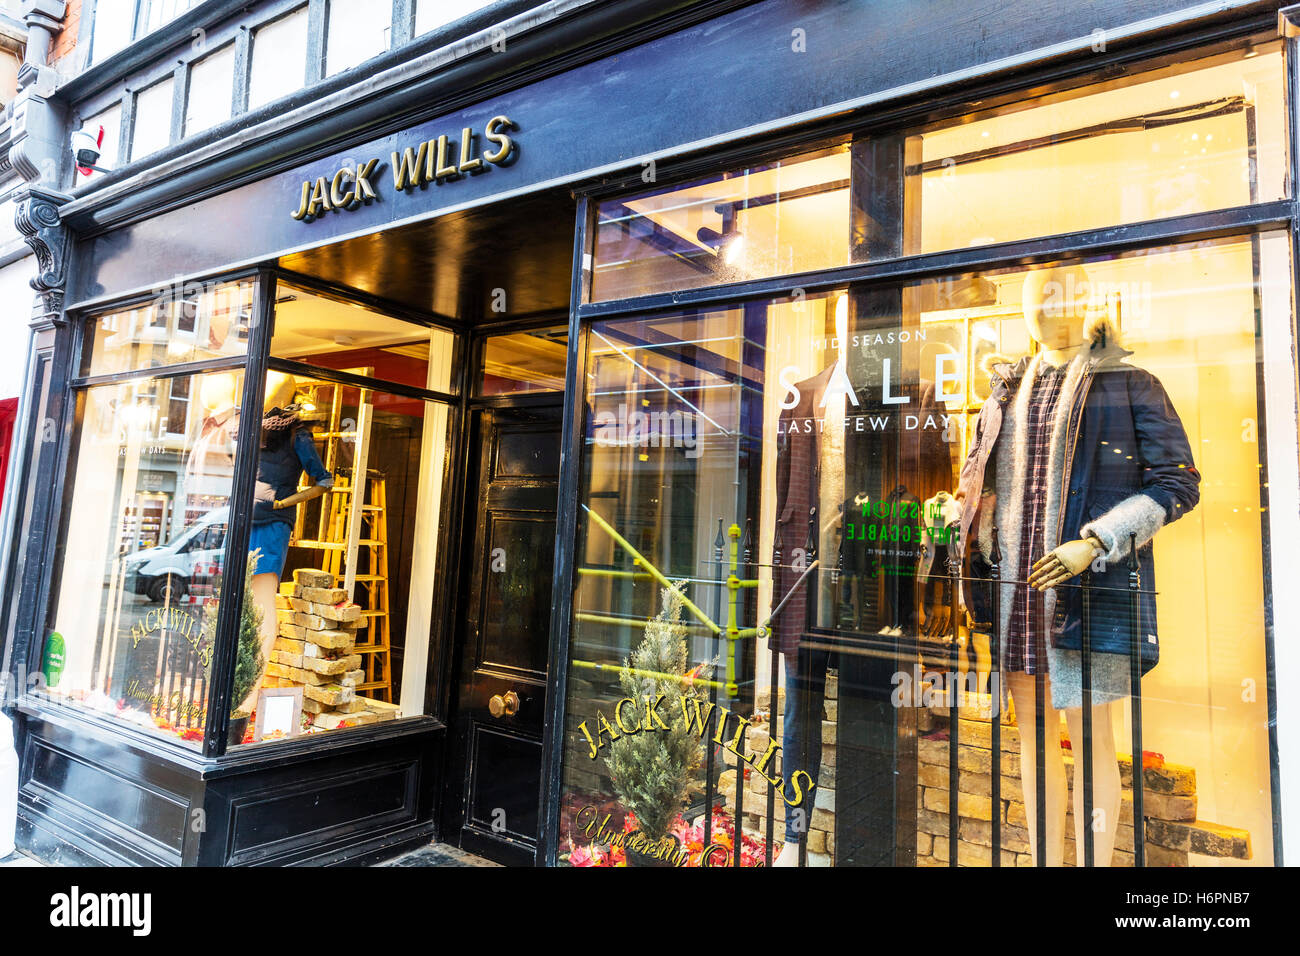 Jack Wills clothes shop clothing store high street shops Nottingham UK GB England sign exterior front facade signs - Stock Image